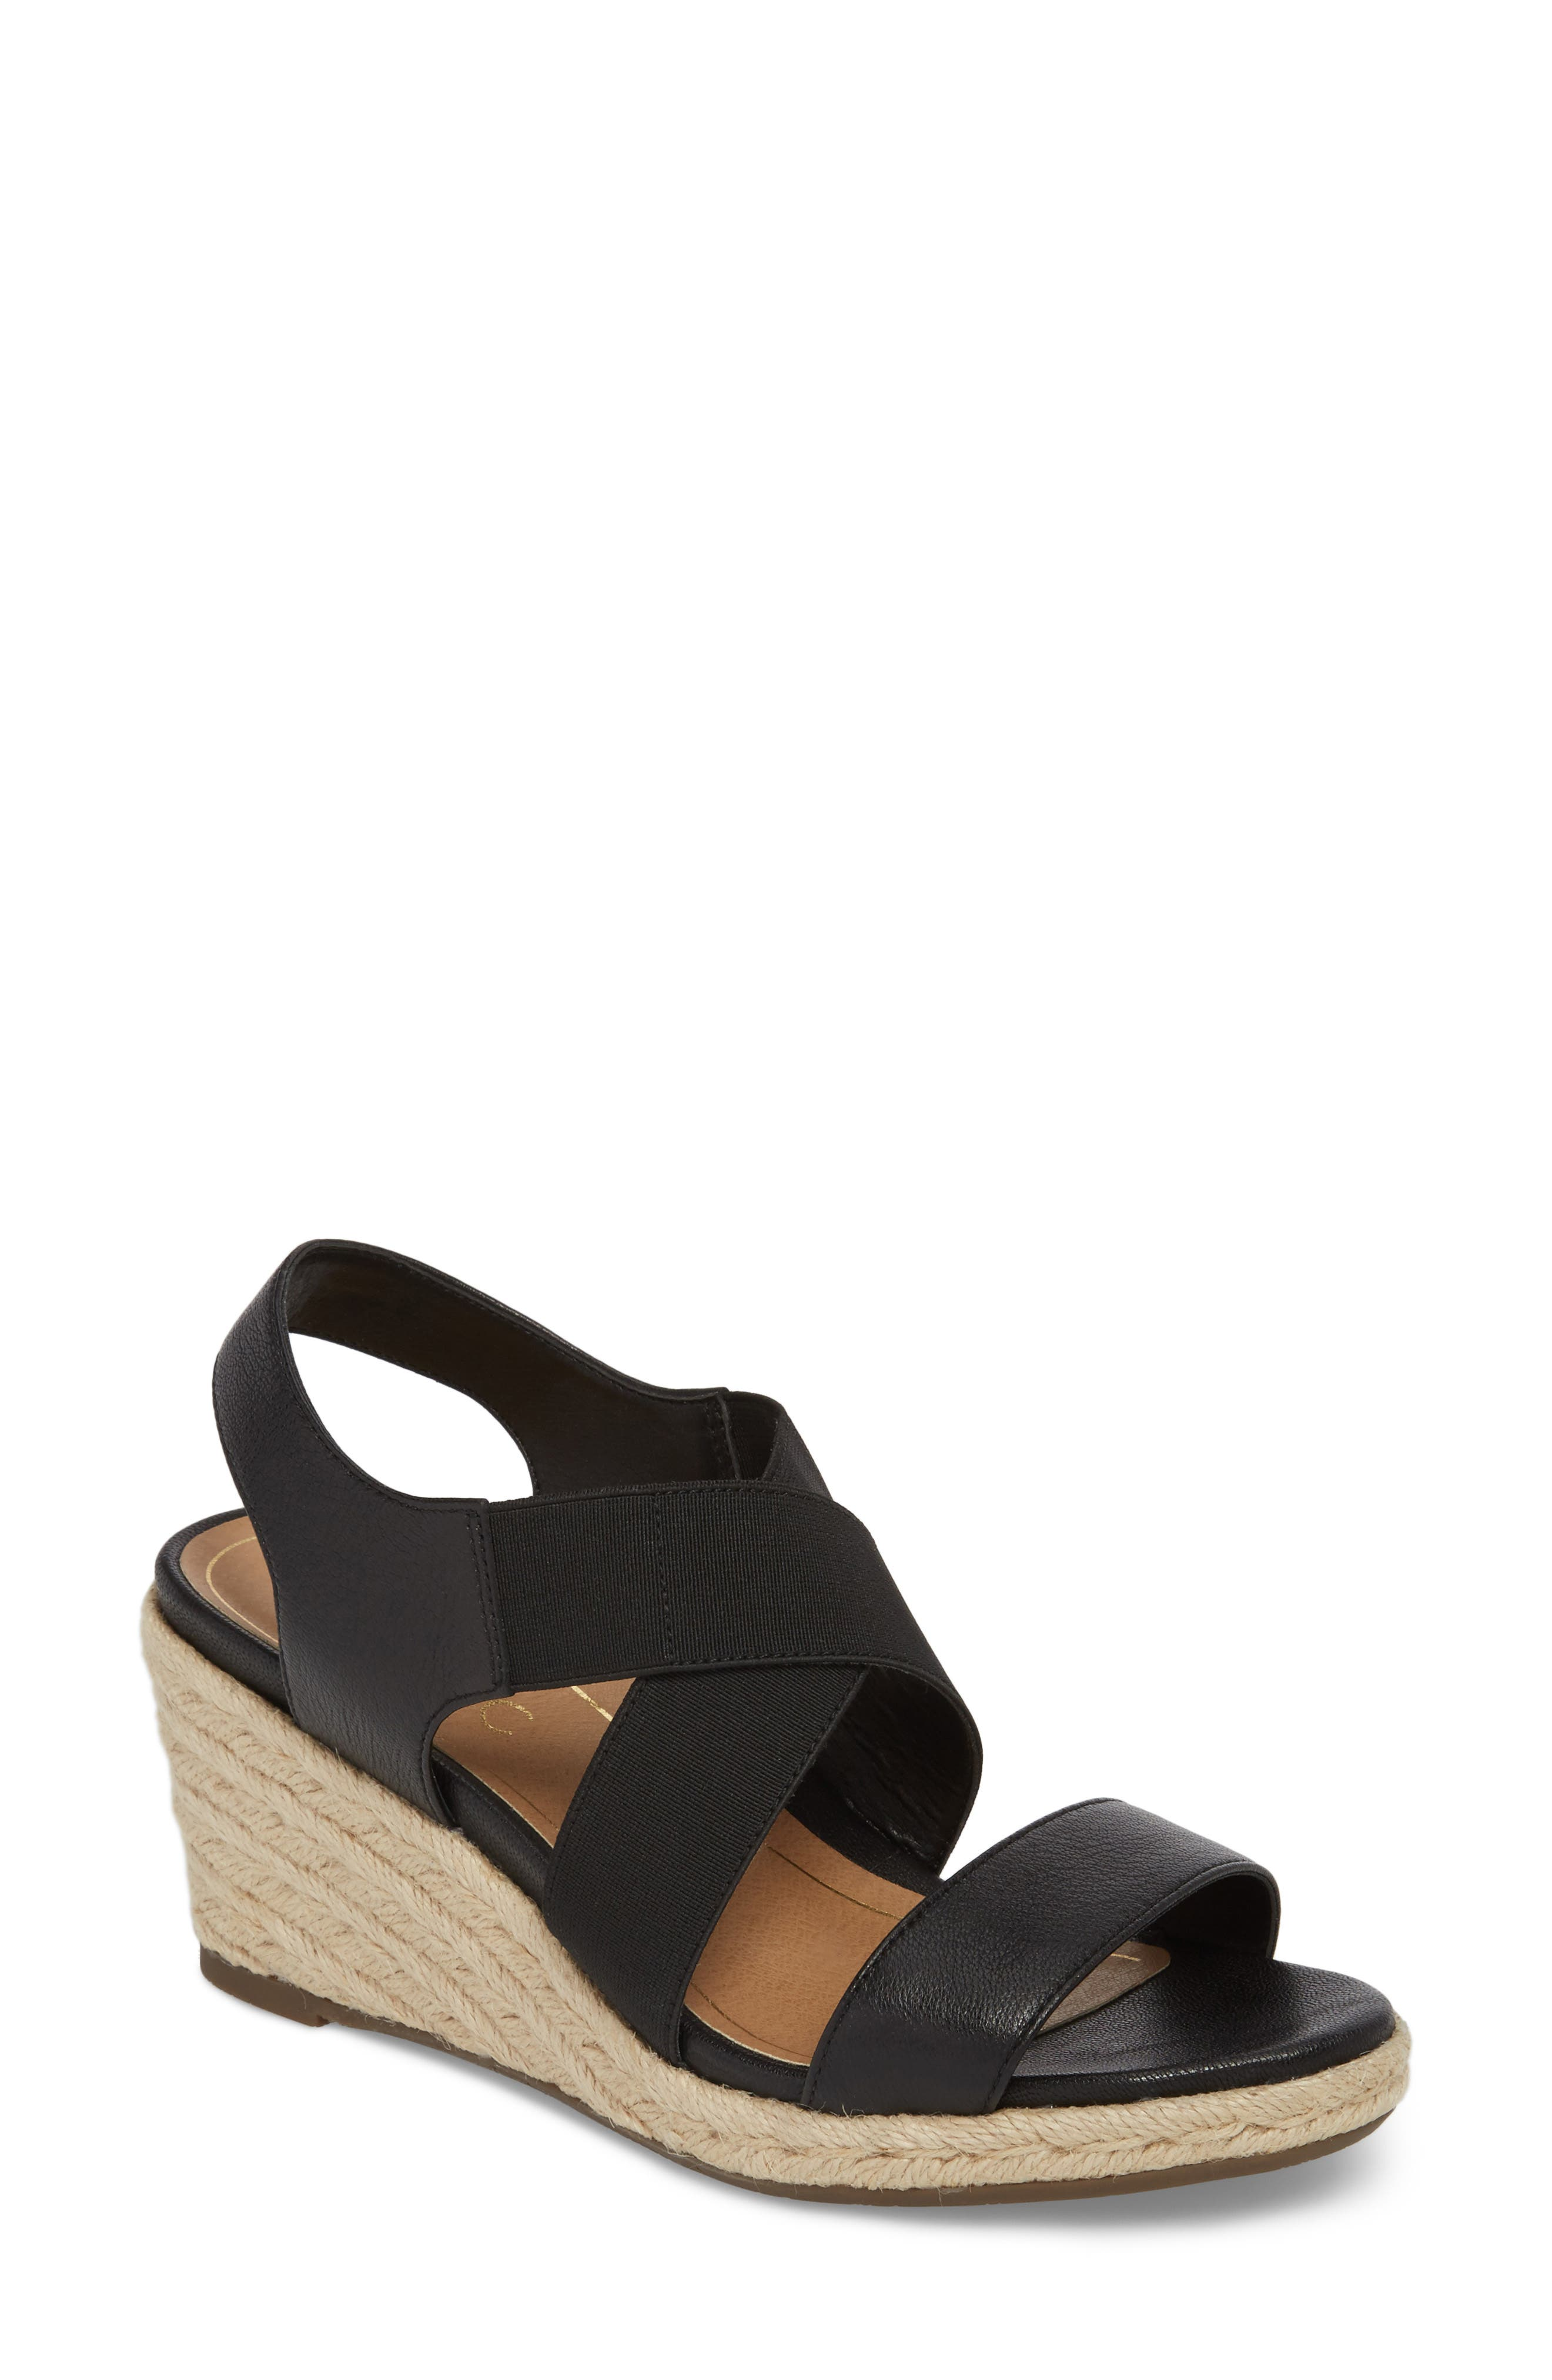 Ainsleigh Wedge Sandal,                         Main,                         color, BLACK LEATHER